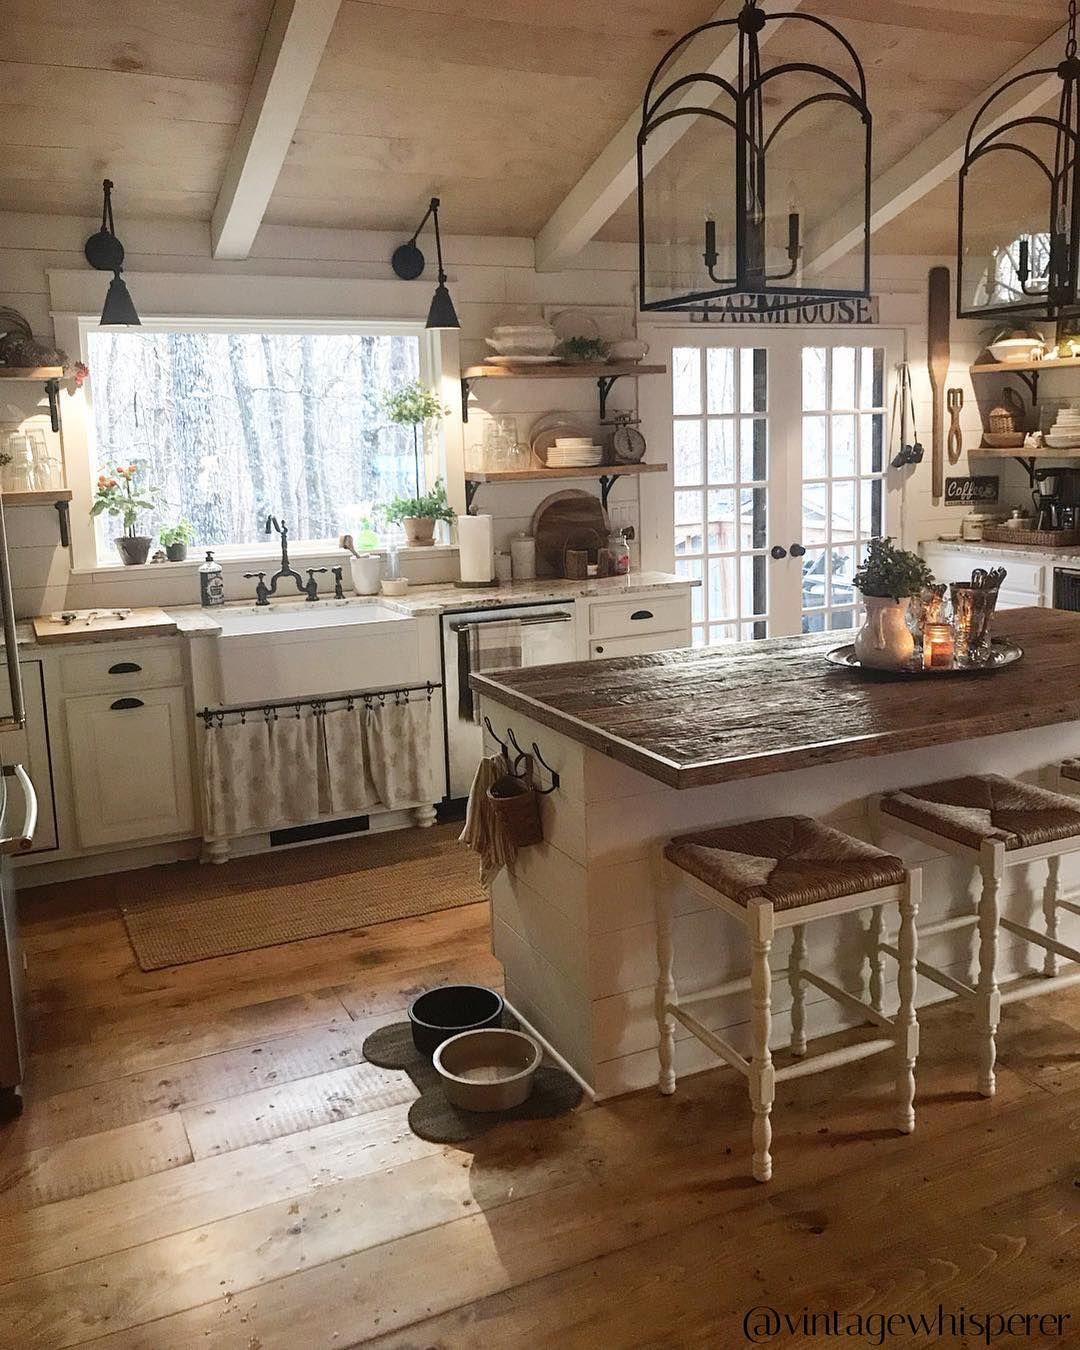 Farmhouse Fanatics On Instagram Use An Emoji To Describe This Cottagestyle Kitchen Vintagew Farmhouse Kitchen Decor Home Decor Kitchen Rustic Kitchen